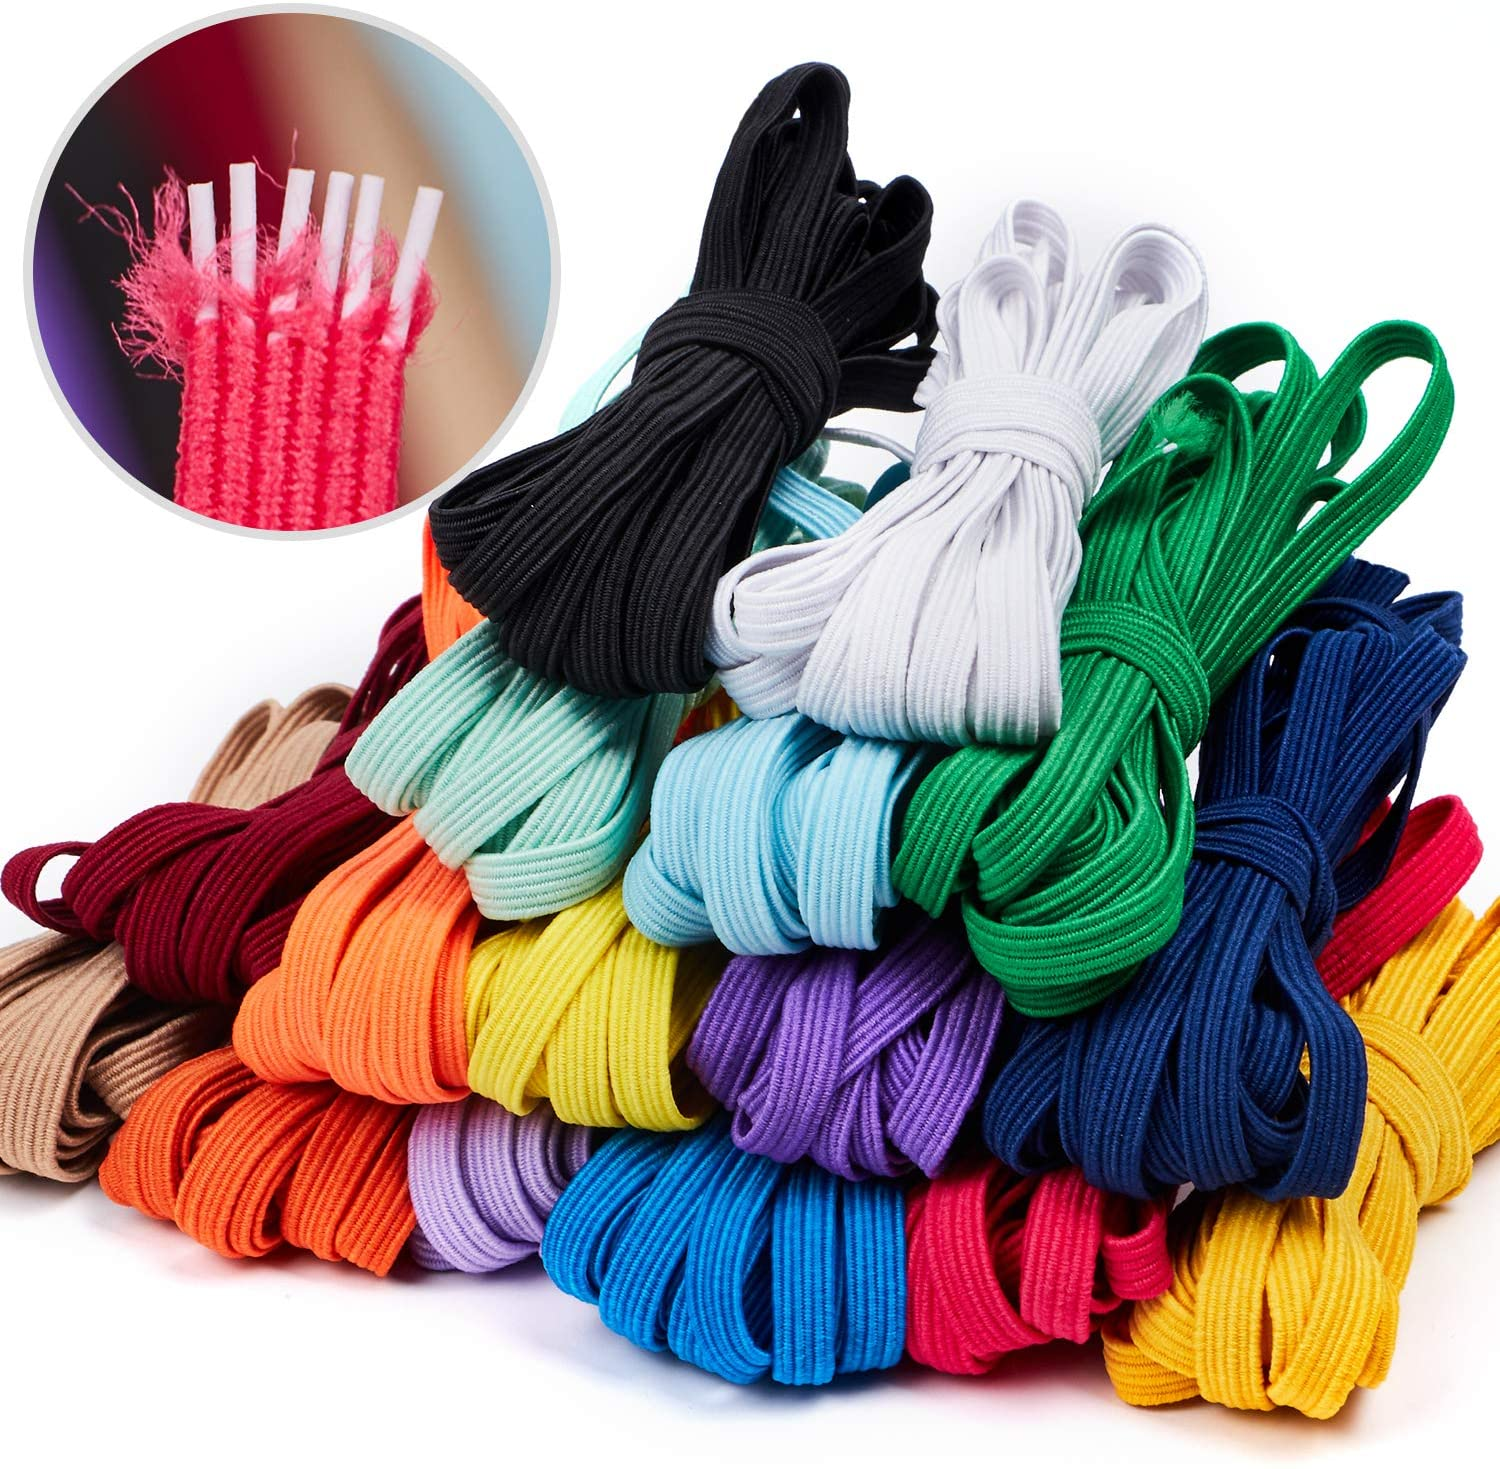 16 Colors Elastic Band for Sewing 1/4 inch Braided Flat Elastic Cord Homemade Mask Rope Heavy Stretch for Sewing and Crafting High Elasticity Knit Spool Bedspread Cuff for Adult DIY(48 Yards Length)